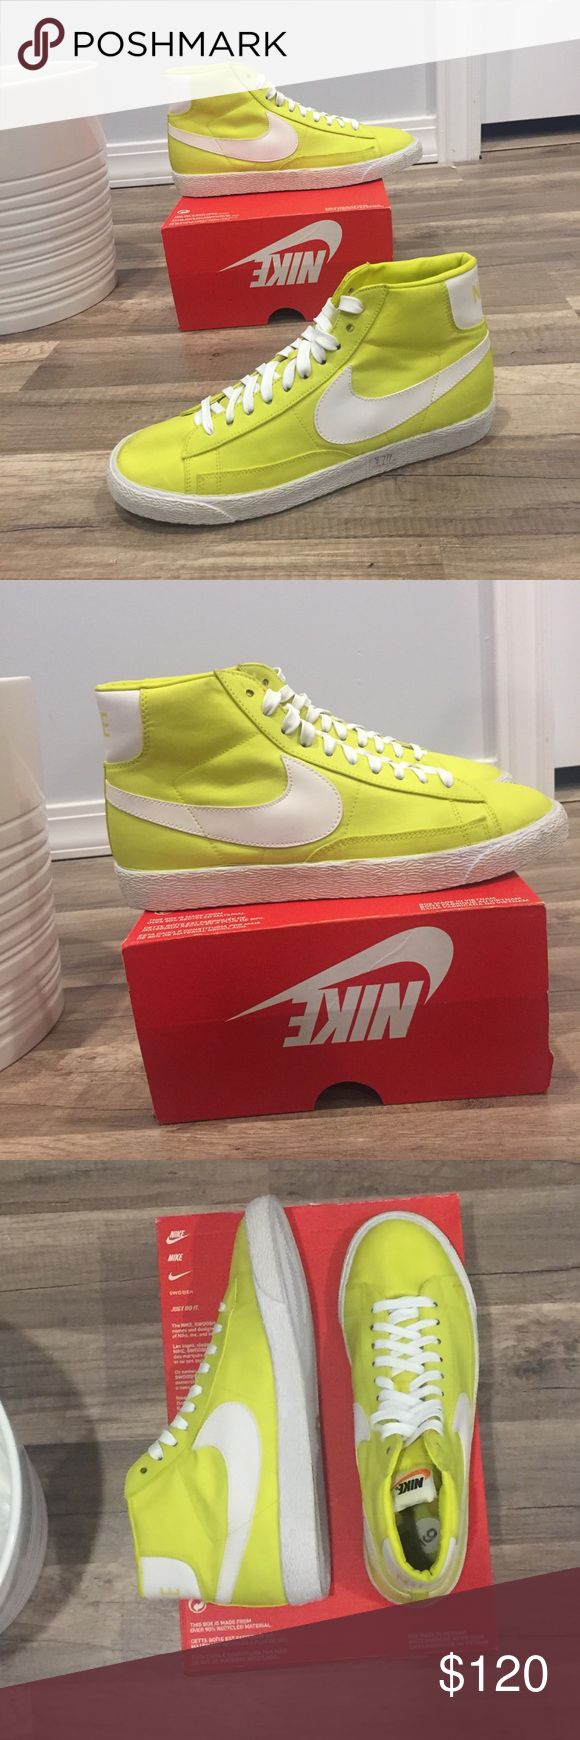 NIKE Vintage Blazer Shoes **BRAND NEW**  These feature a unique yellow pastel that is a site statement. The Blazer was introduced by Nike Basketball in 1972 and has since transformed into a modern style staple. Maturing from a simple canvas high top to a leather mid top and casual low top, this shoe just gets better with age. Nike Shoes Sneakers